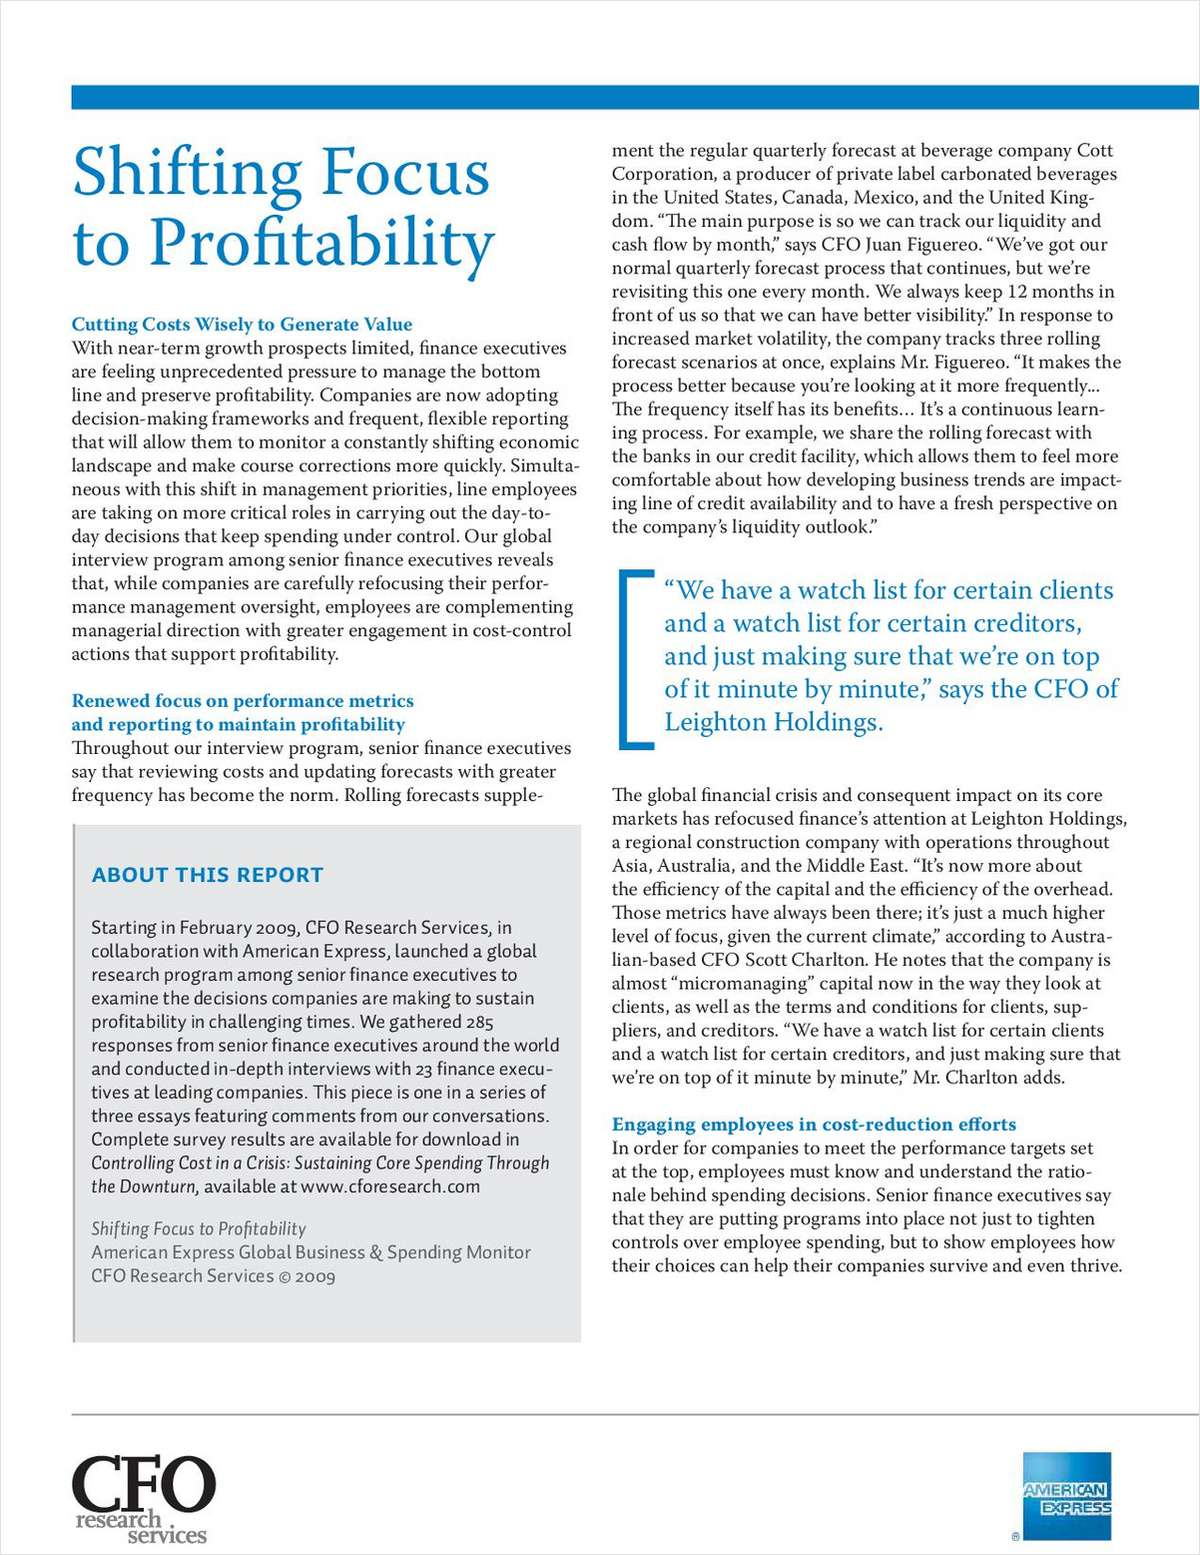 Shifting the Focus for Profitability